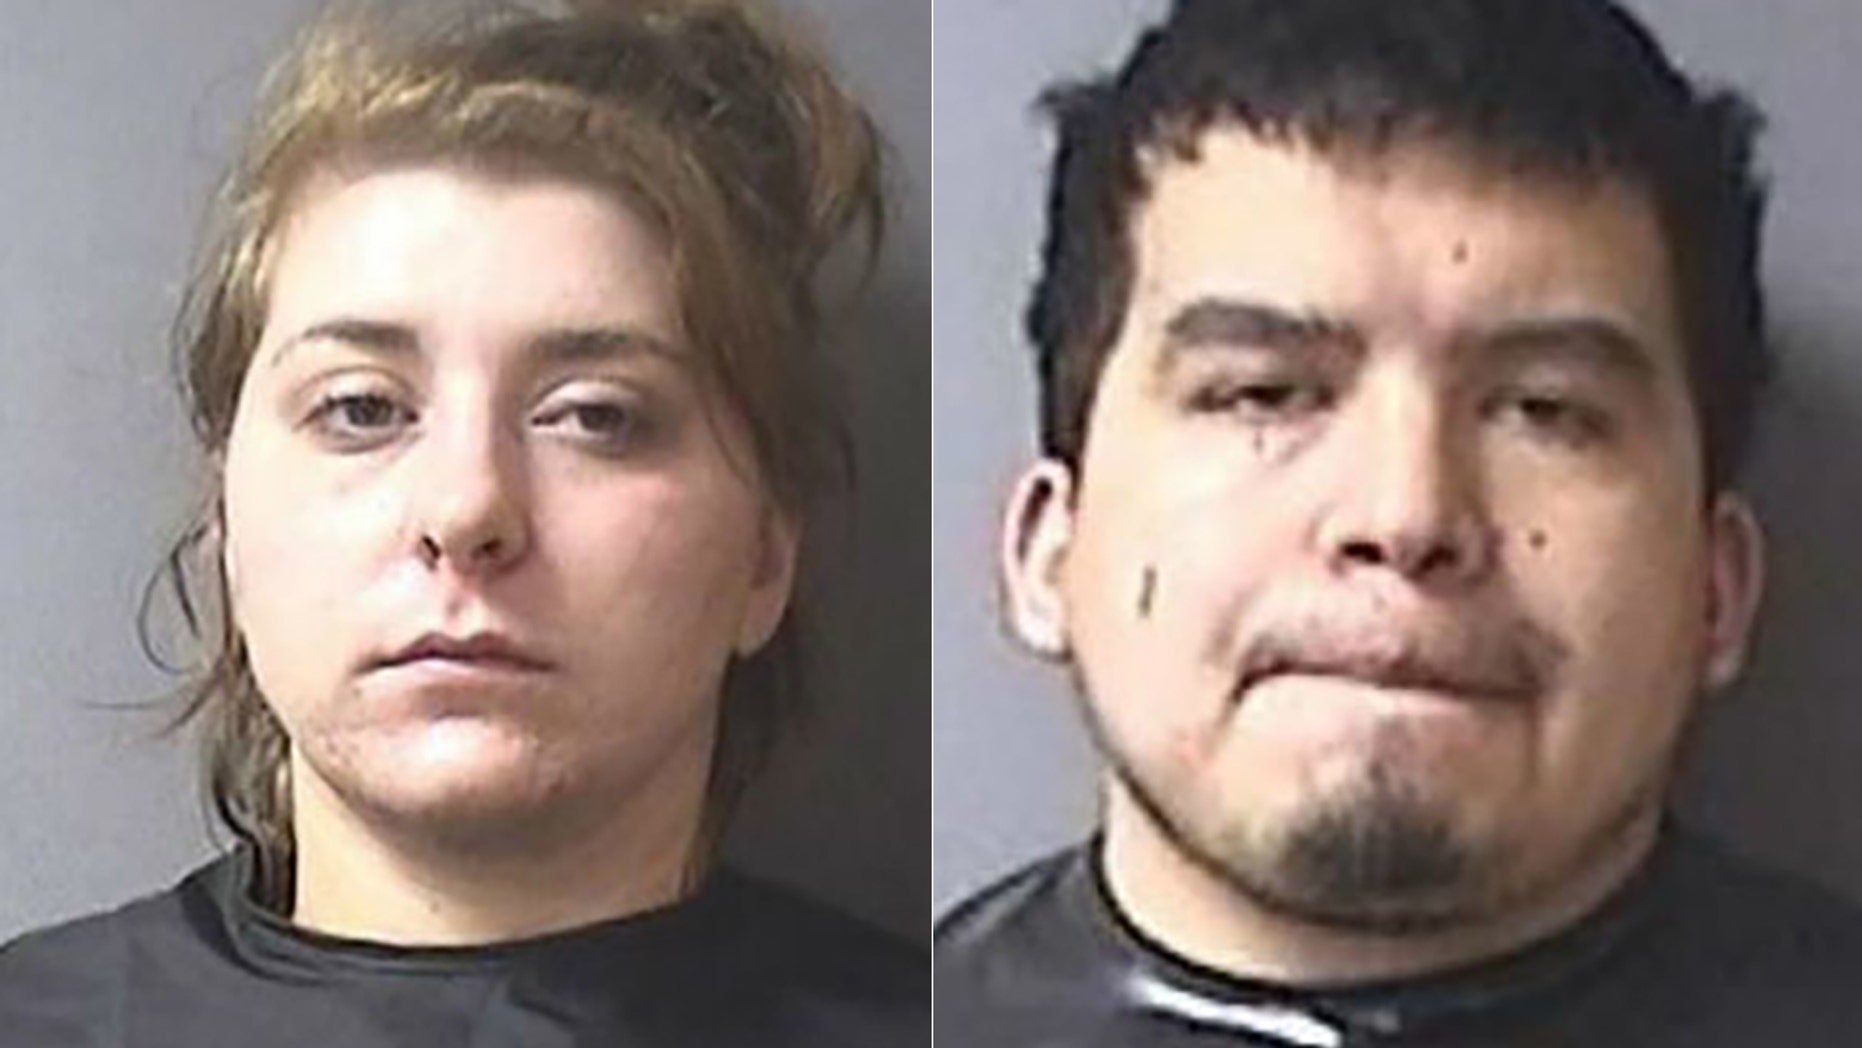 Kayla Hudson, left, and her boyfriend Ryan Ramirez were charged in the murder of Paisley Hudson.